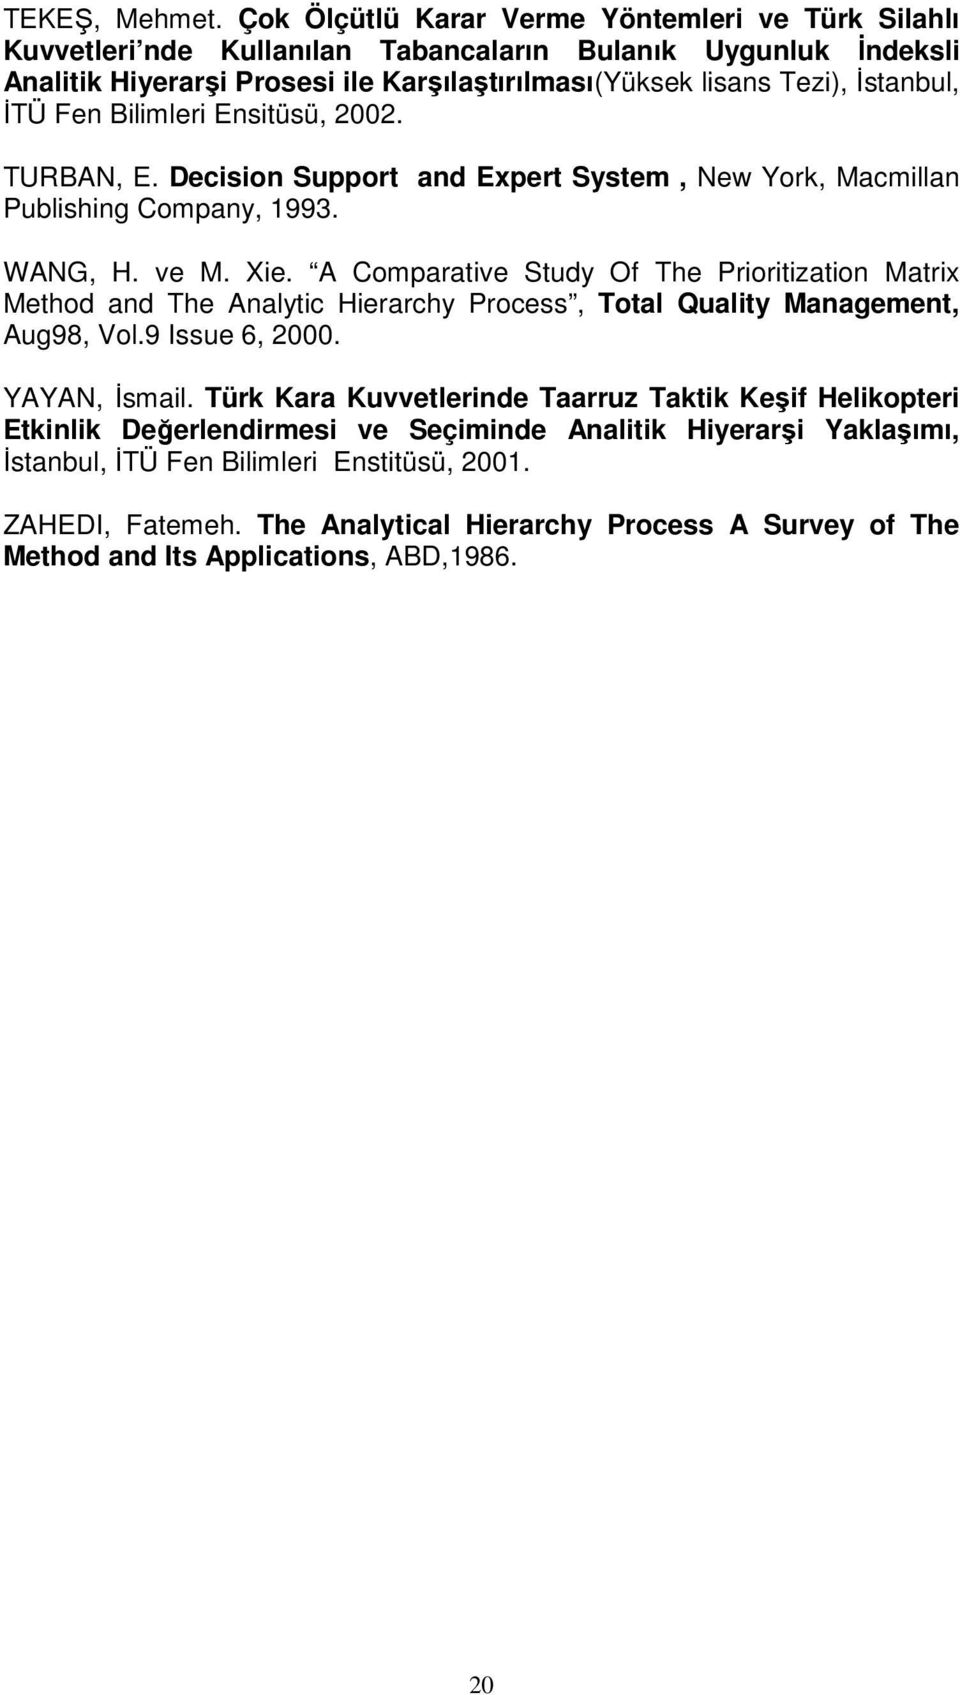 İTÜ Fen Bilimleri Ensitüsü, 2002. TURBAN, E. Decision Support and Expert System, New York, Macmillan Publishing Company, 1993. WANG, H. ve M. Xie.